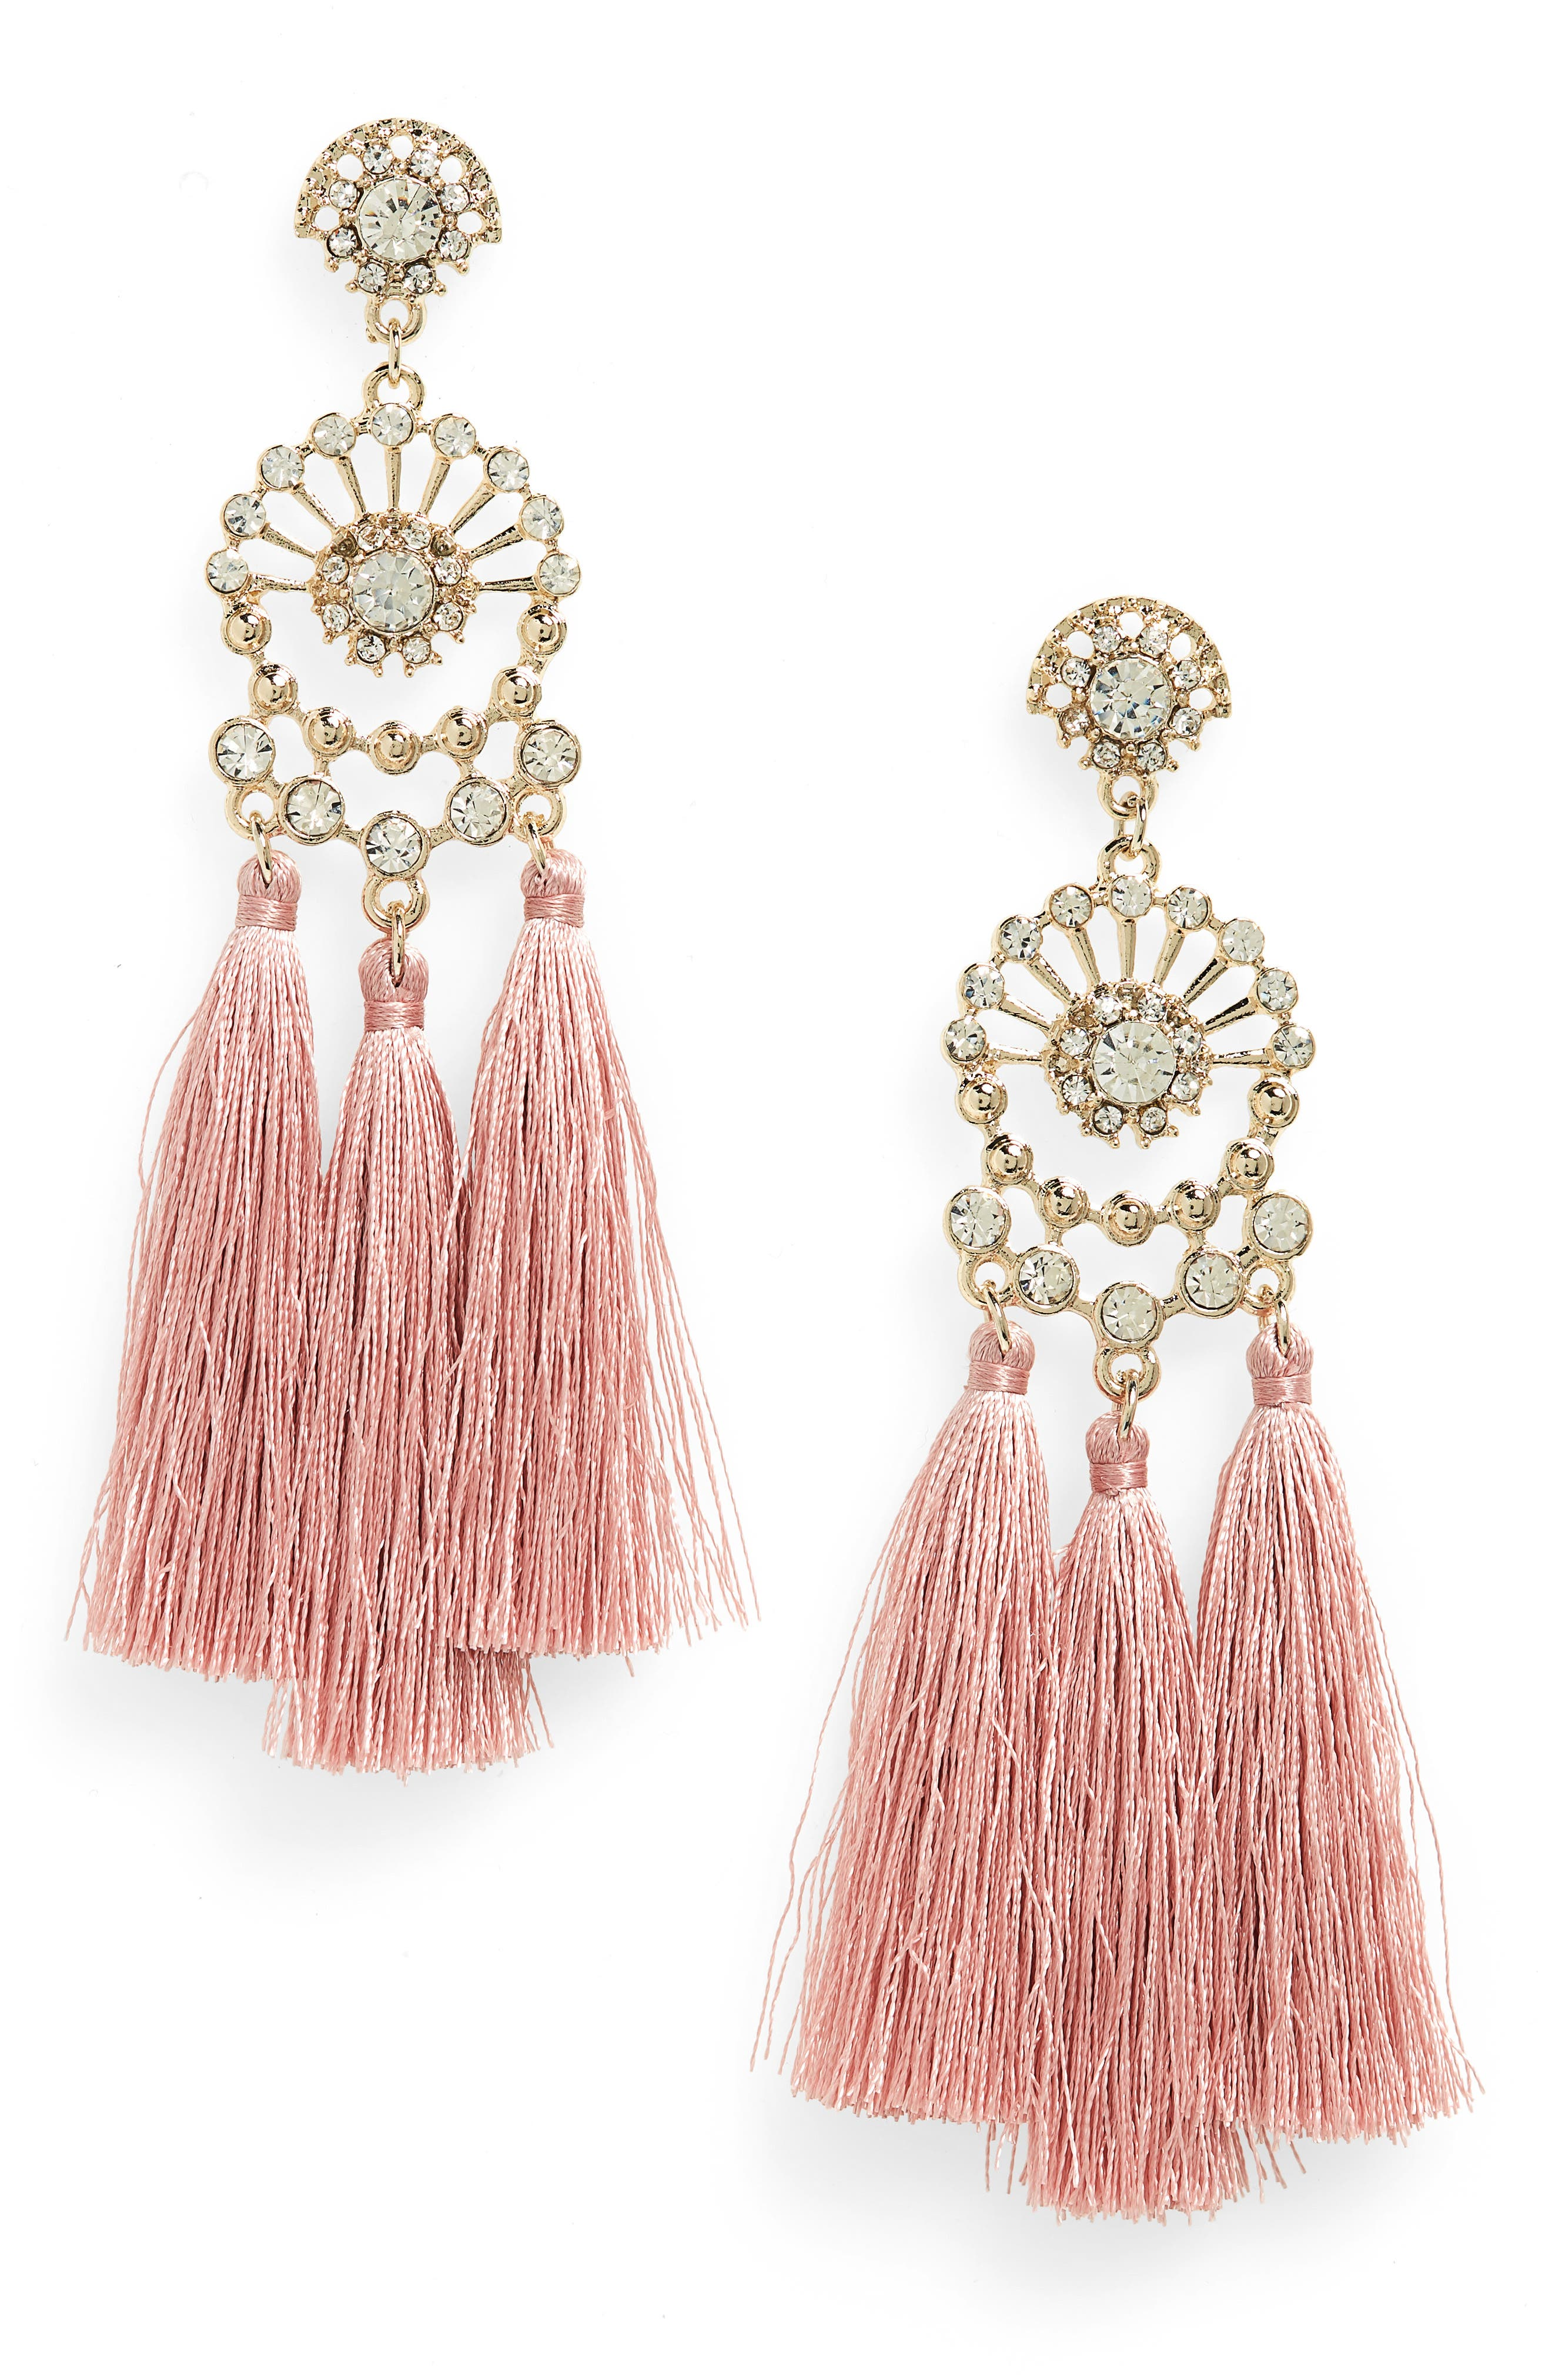 Rhinestone Tassel Drop Earrings,                         Main,                         color, 040